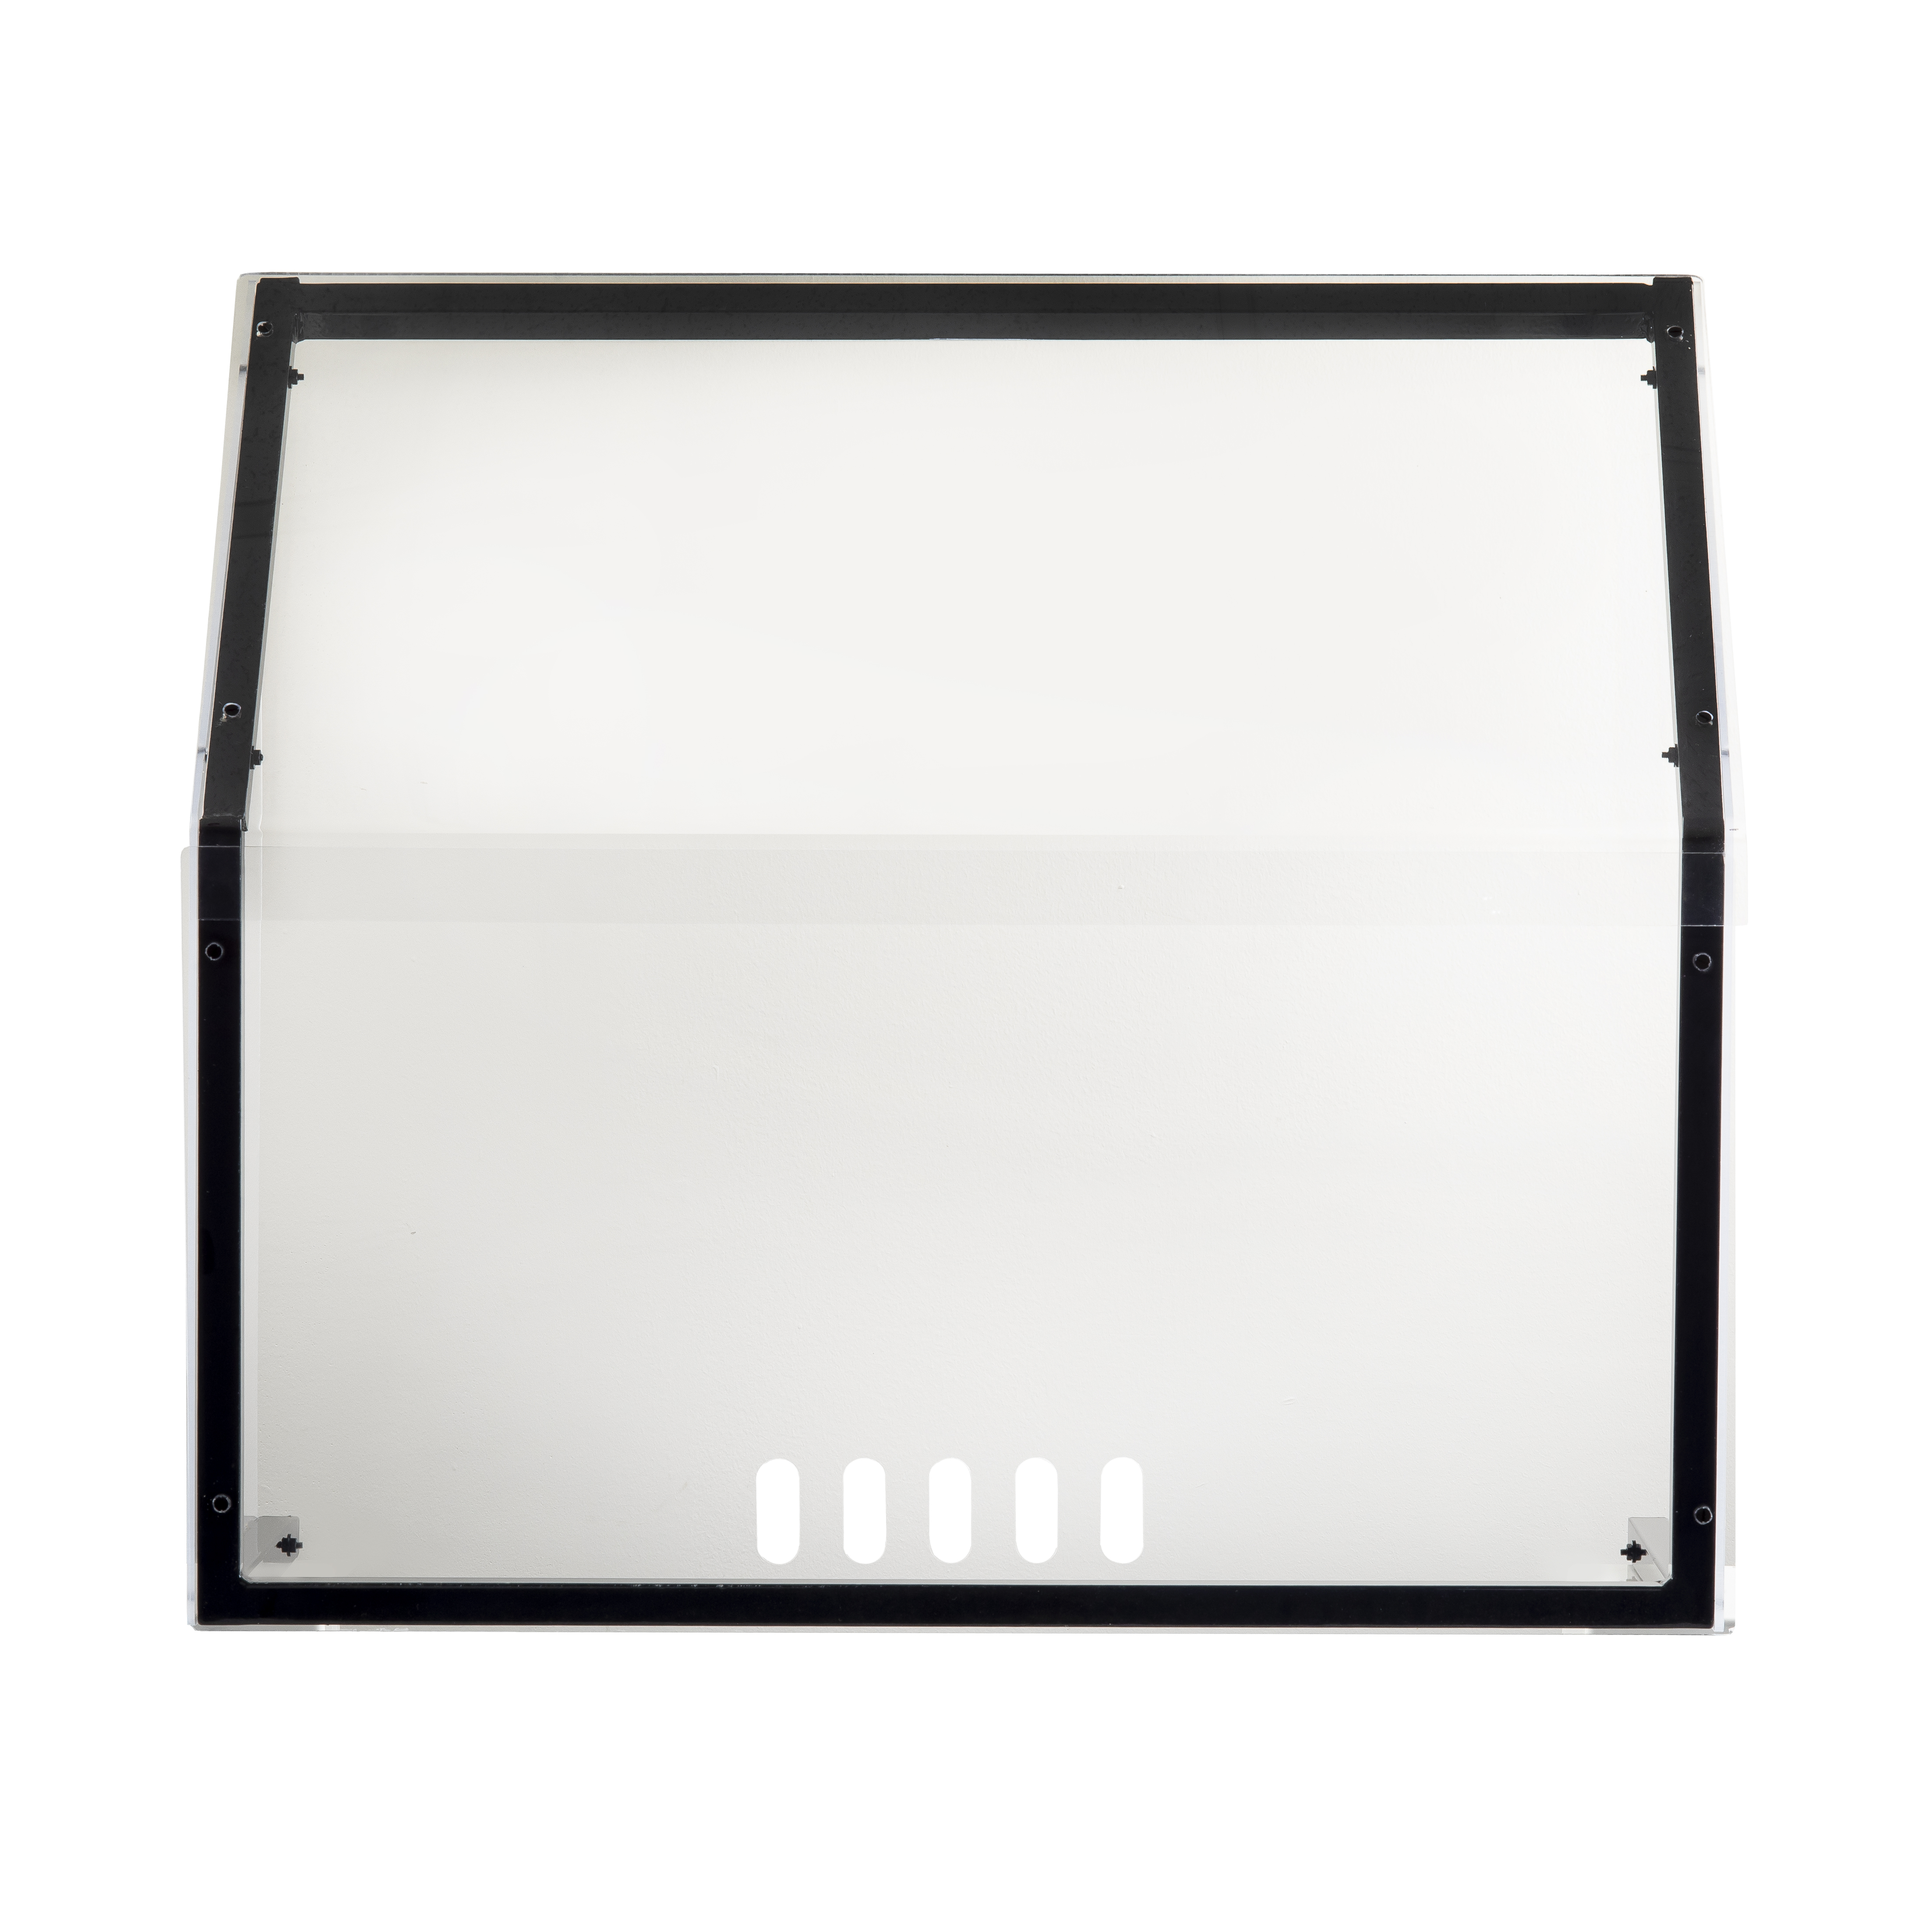 TableCraft Products CWACT1FSHIELD coutnertop shields